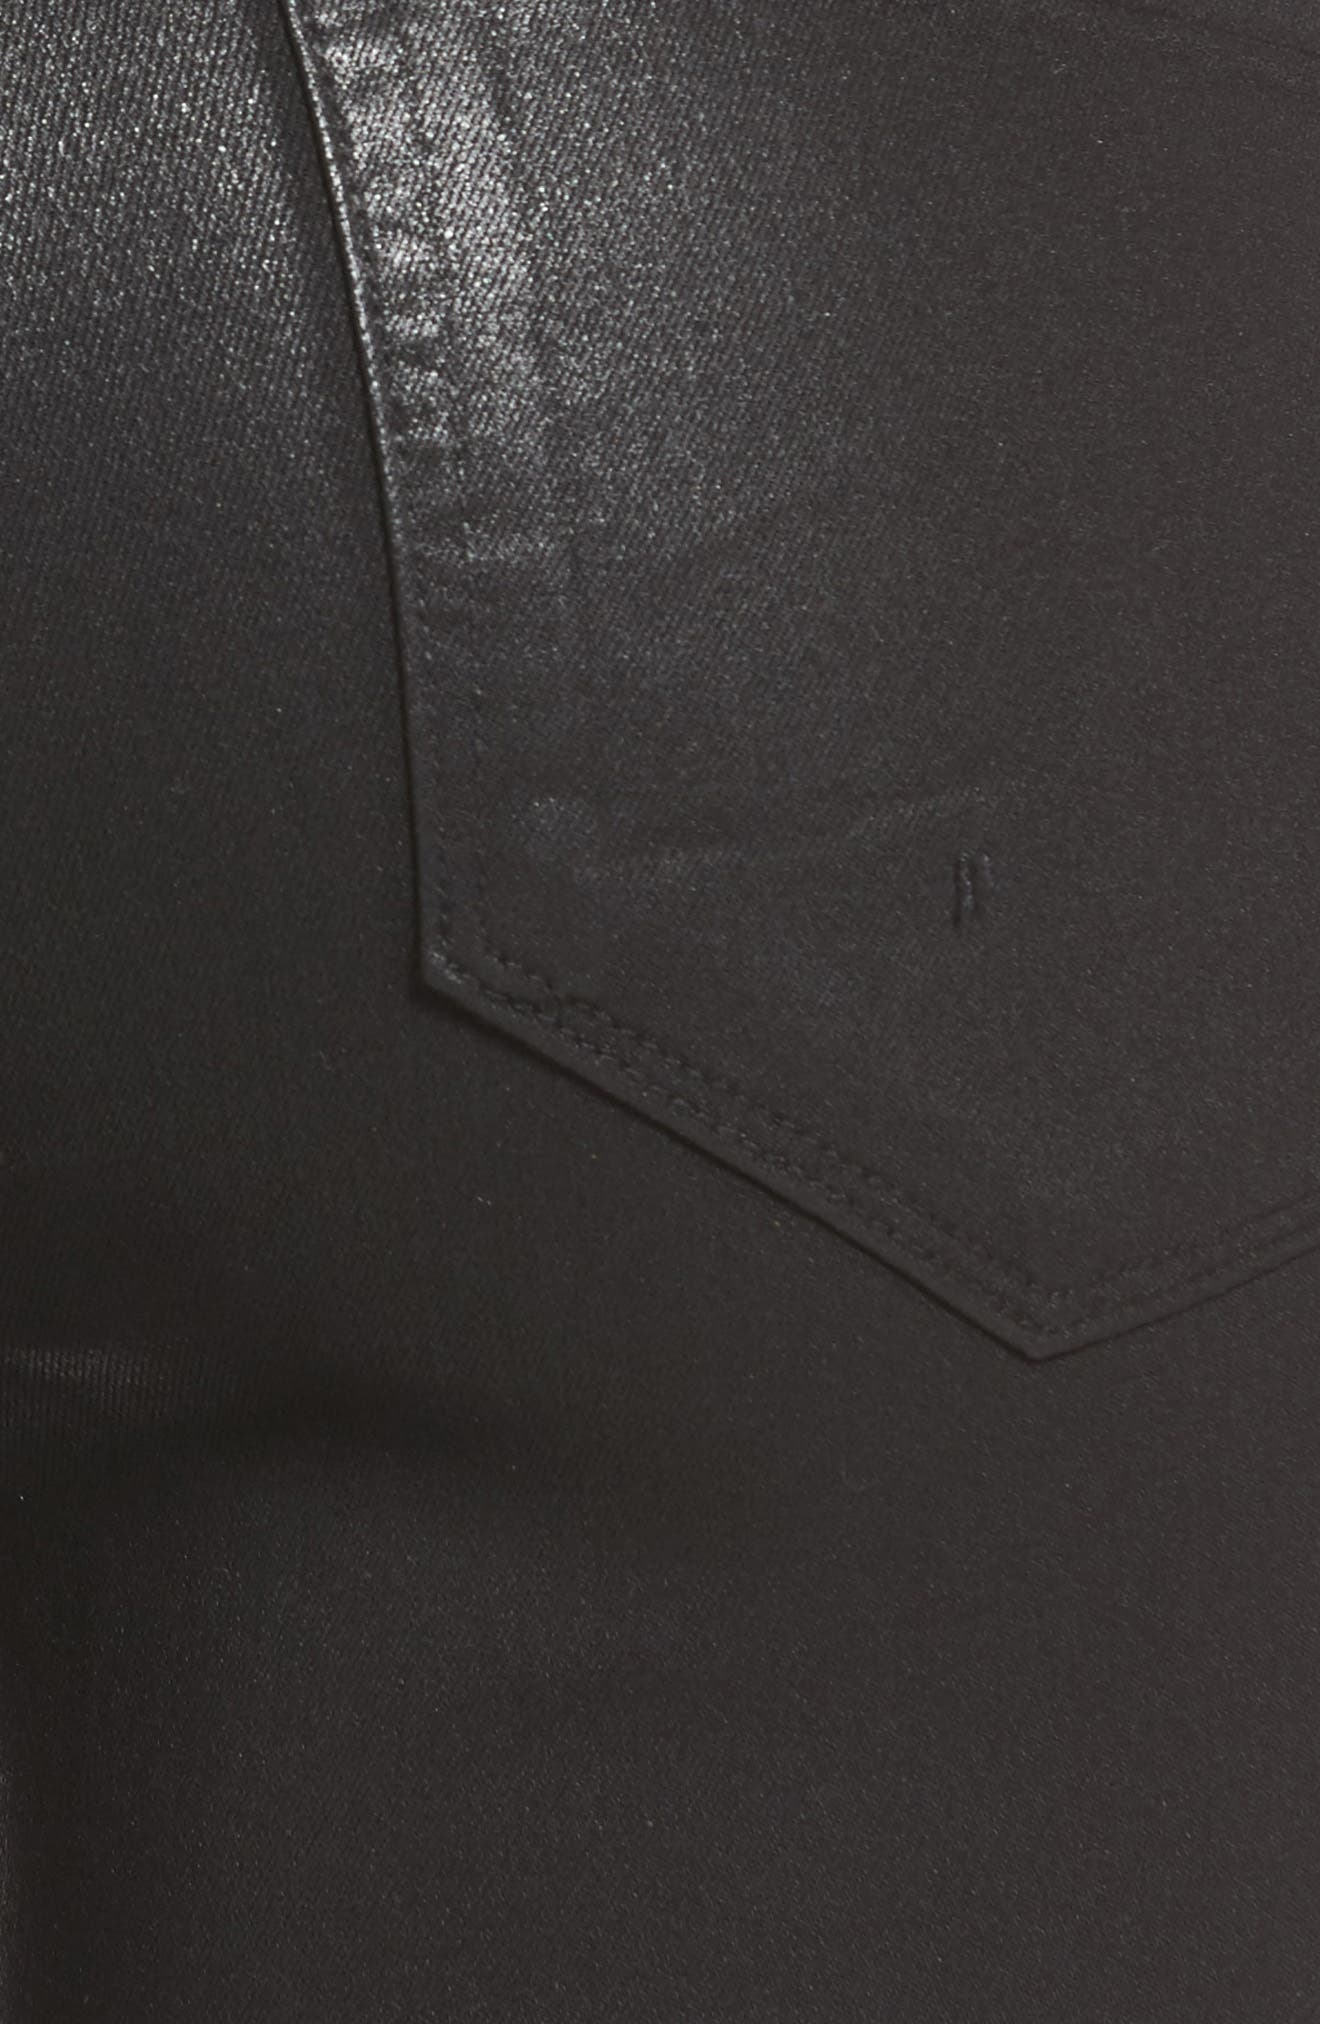 PAIGE,                             Transcend - Hoxton High Waist Ankle Skinny Jeans,                             Alternate thumbnail 6, color,                             LUXE BLACK COATED